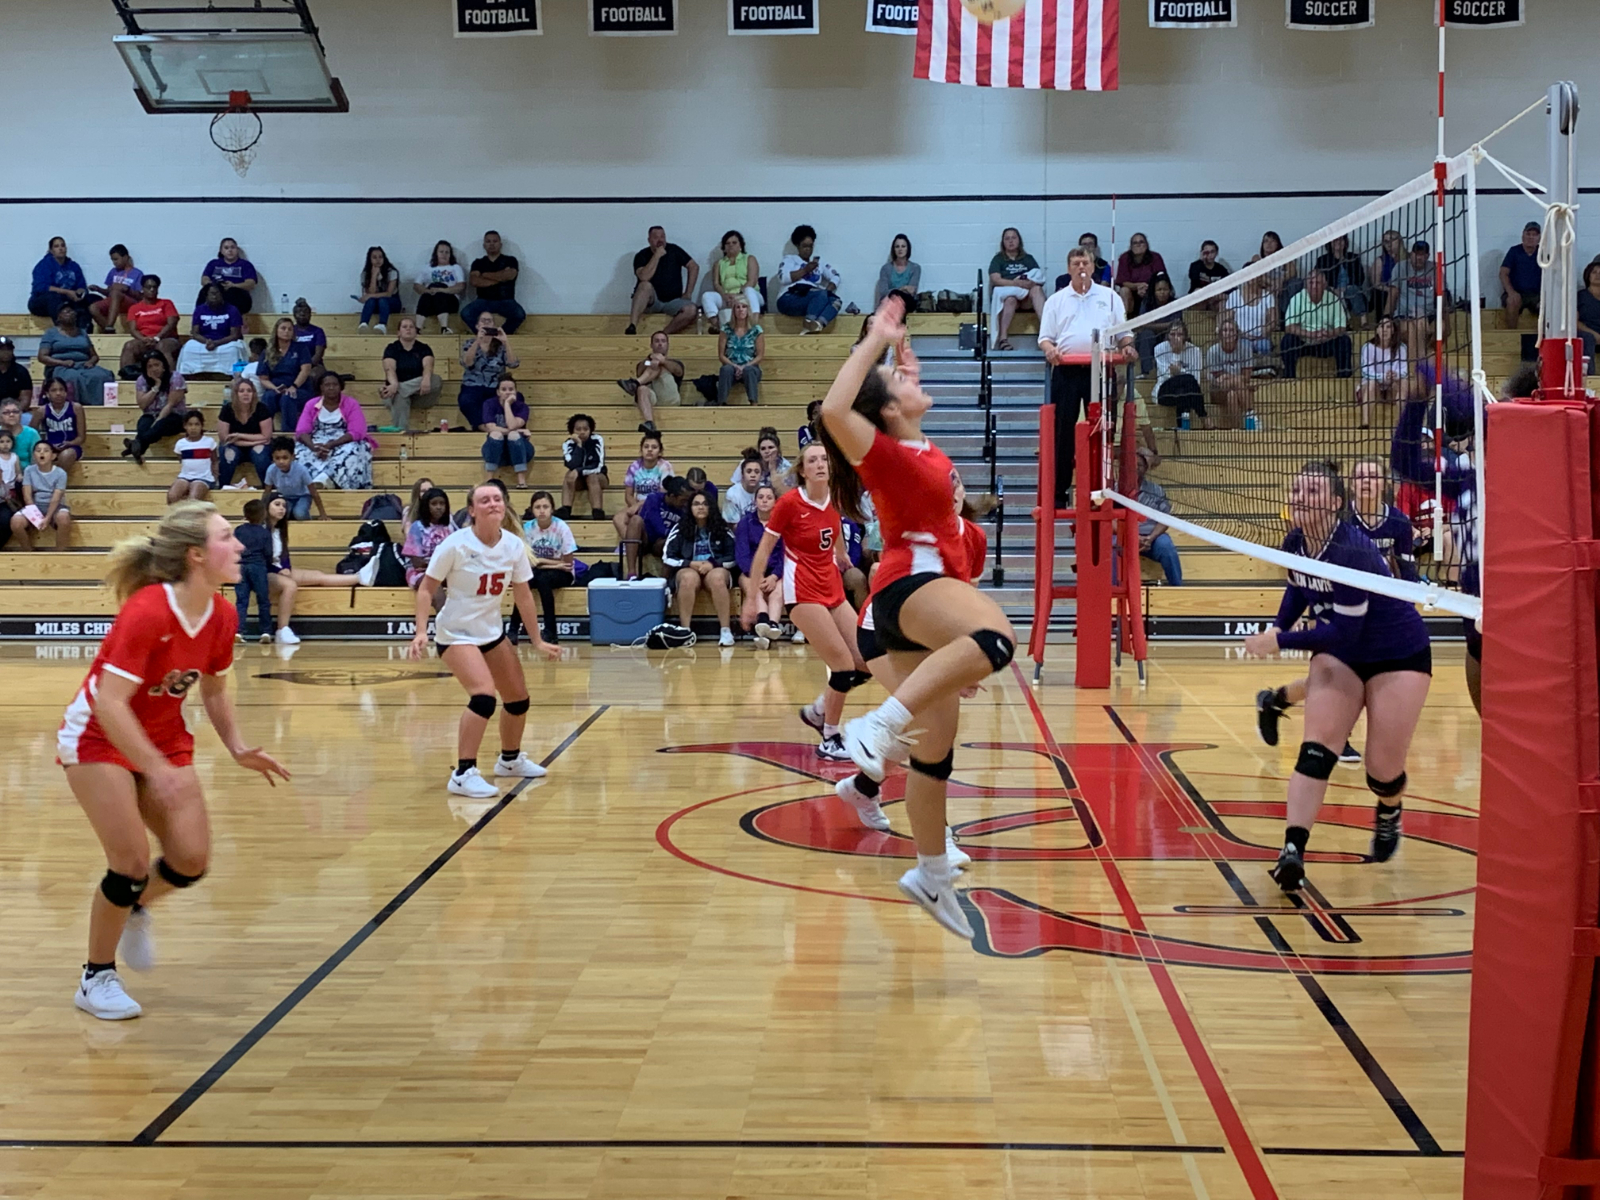 Raiders Volleyball Chops Down Giants